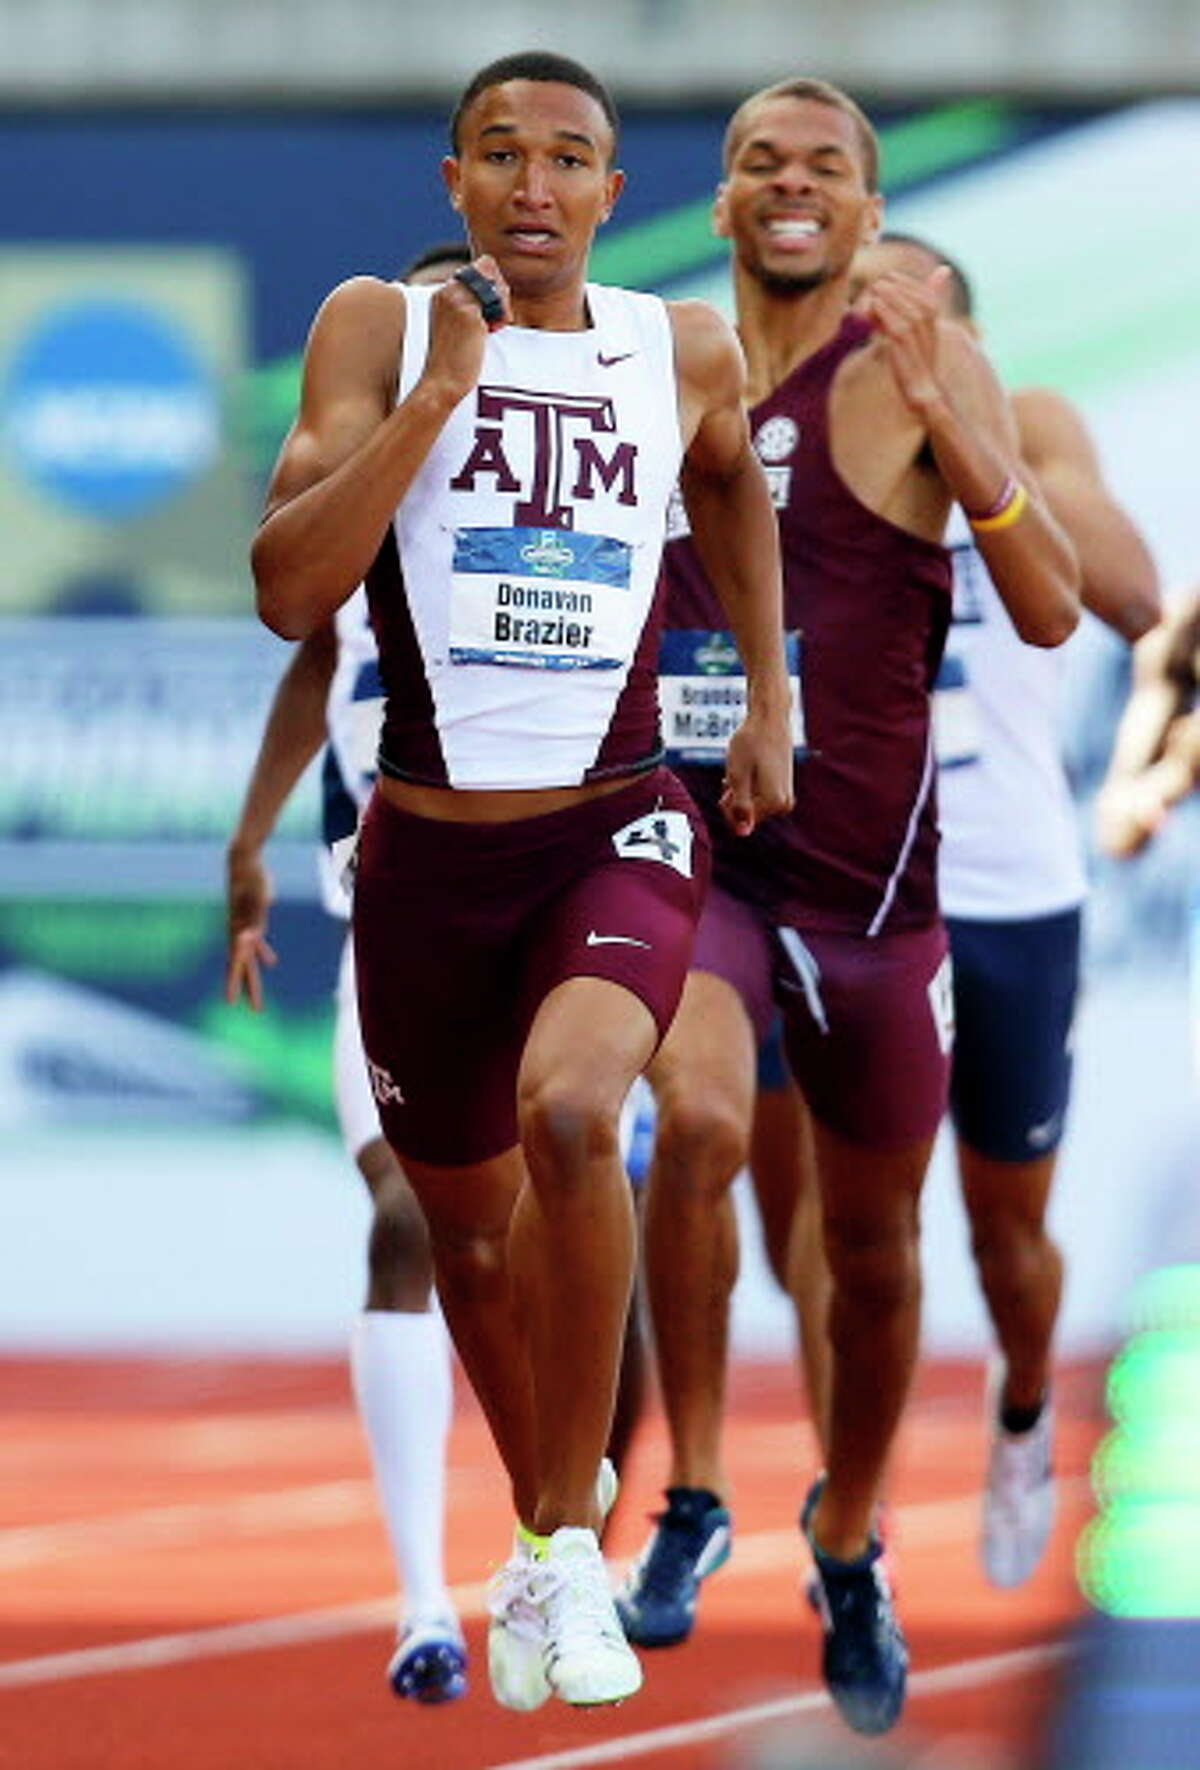 Texas A&M's Donavan Brazier runs on his way to winning the men's 800 meter at the NCAA outdoor track and field championships in Eugene, Ore., Friday, June 10, 2016. (AP Photo/Ryan Kang)